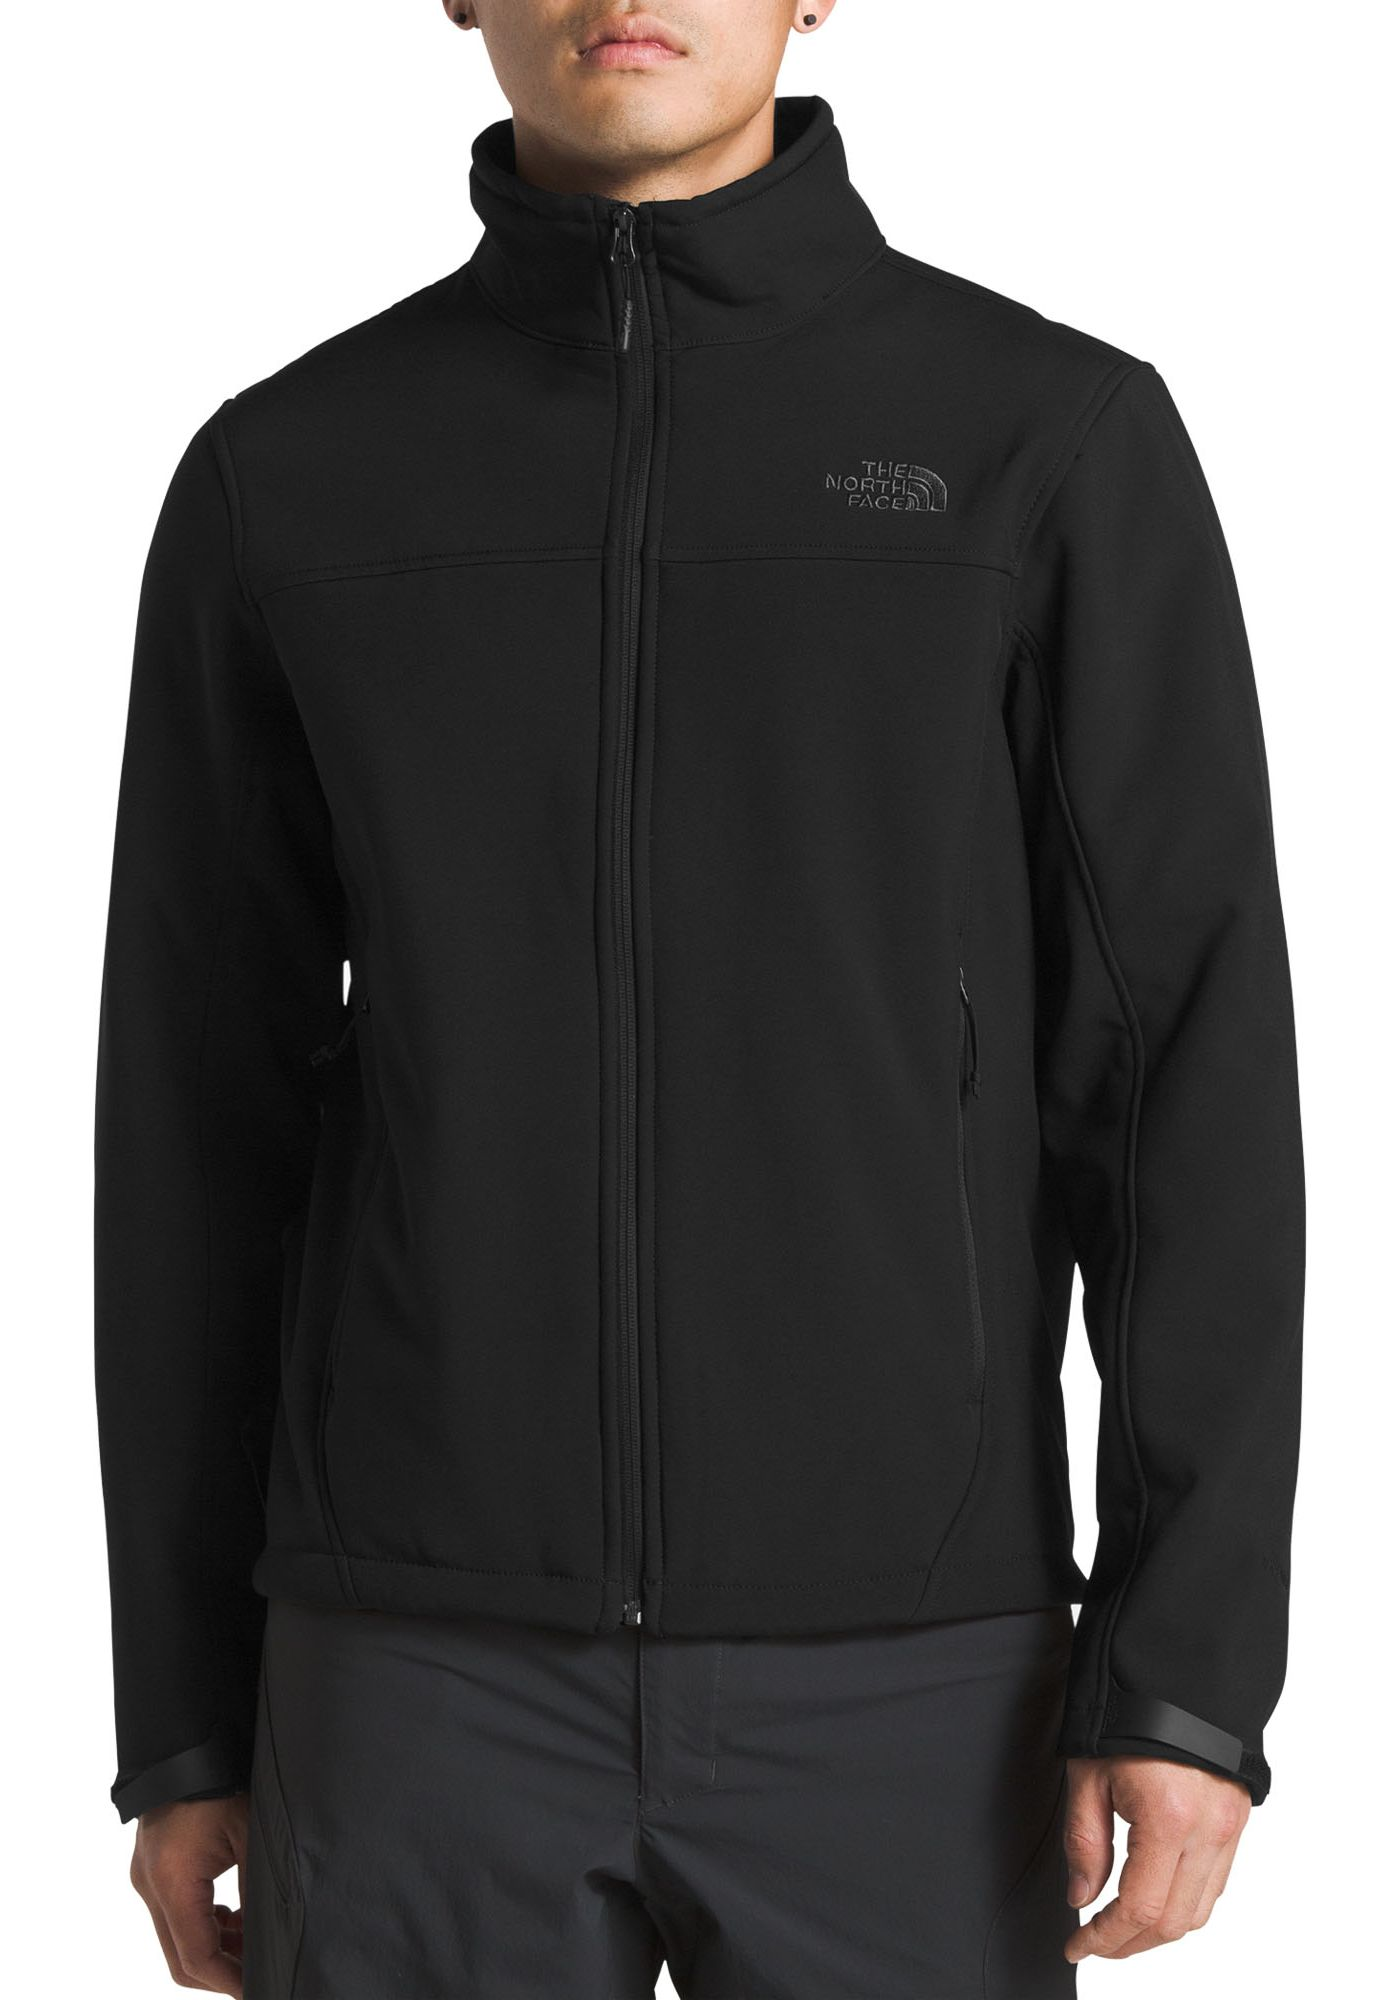 The North Face Men's Apex Chromium Thermal Soft Shell Jacket